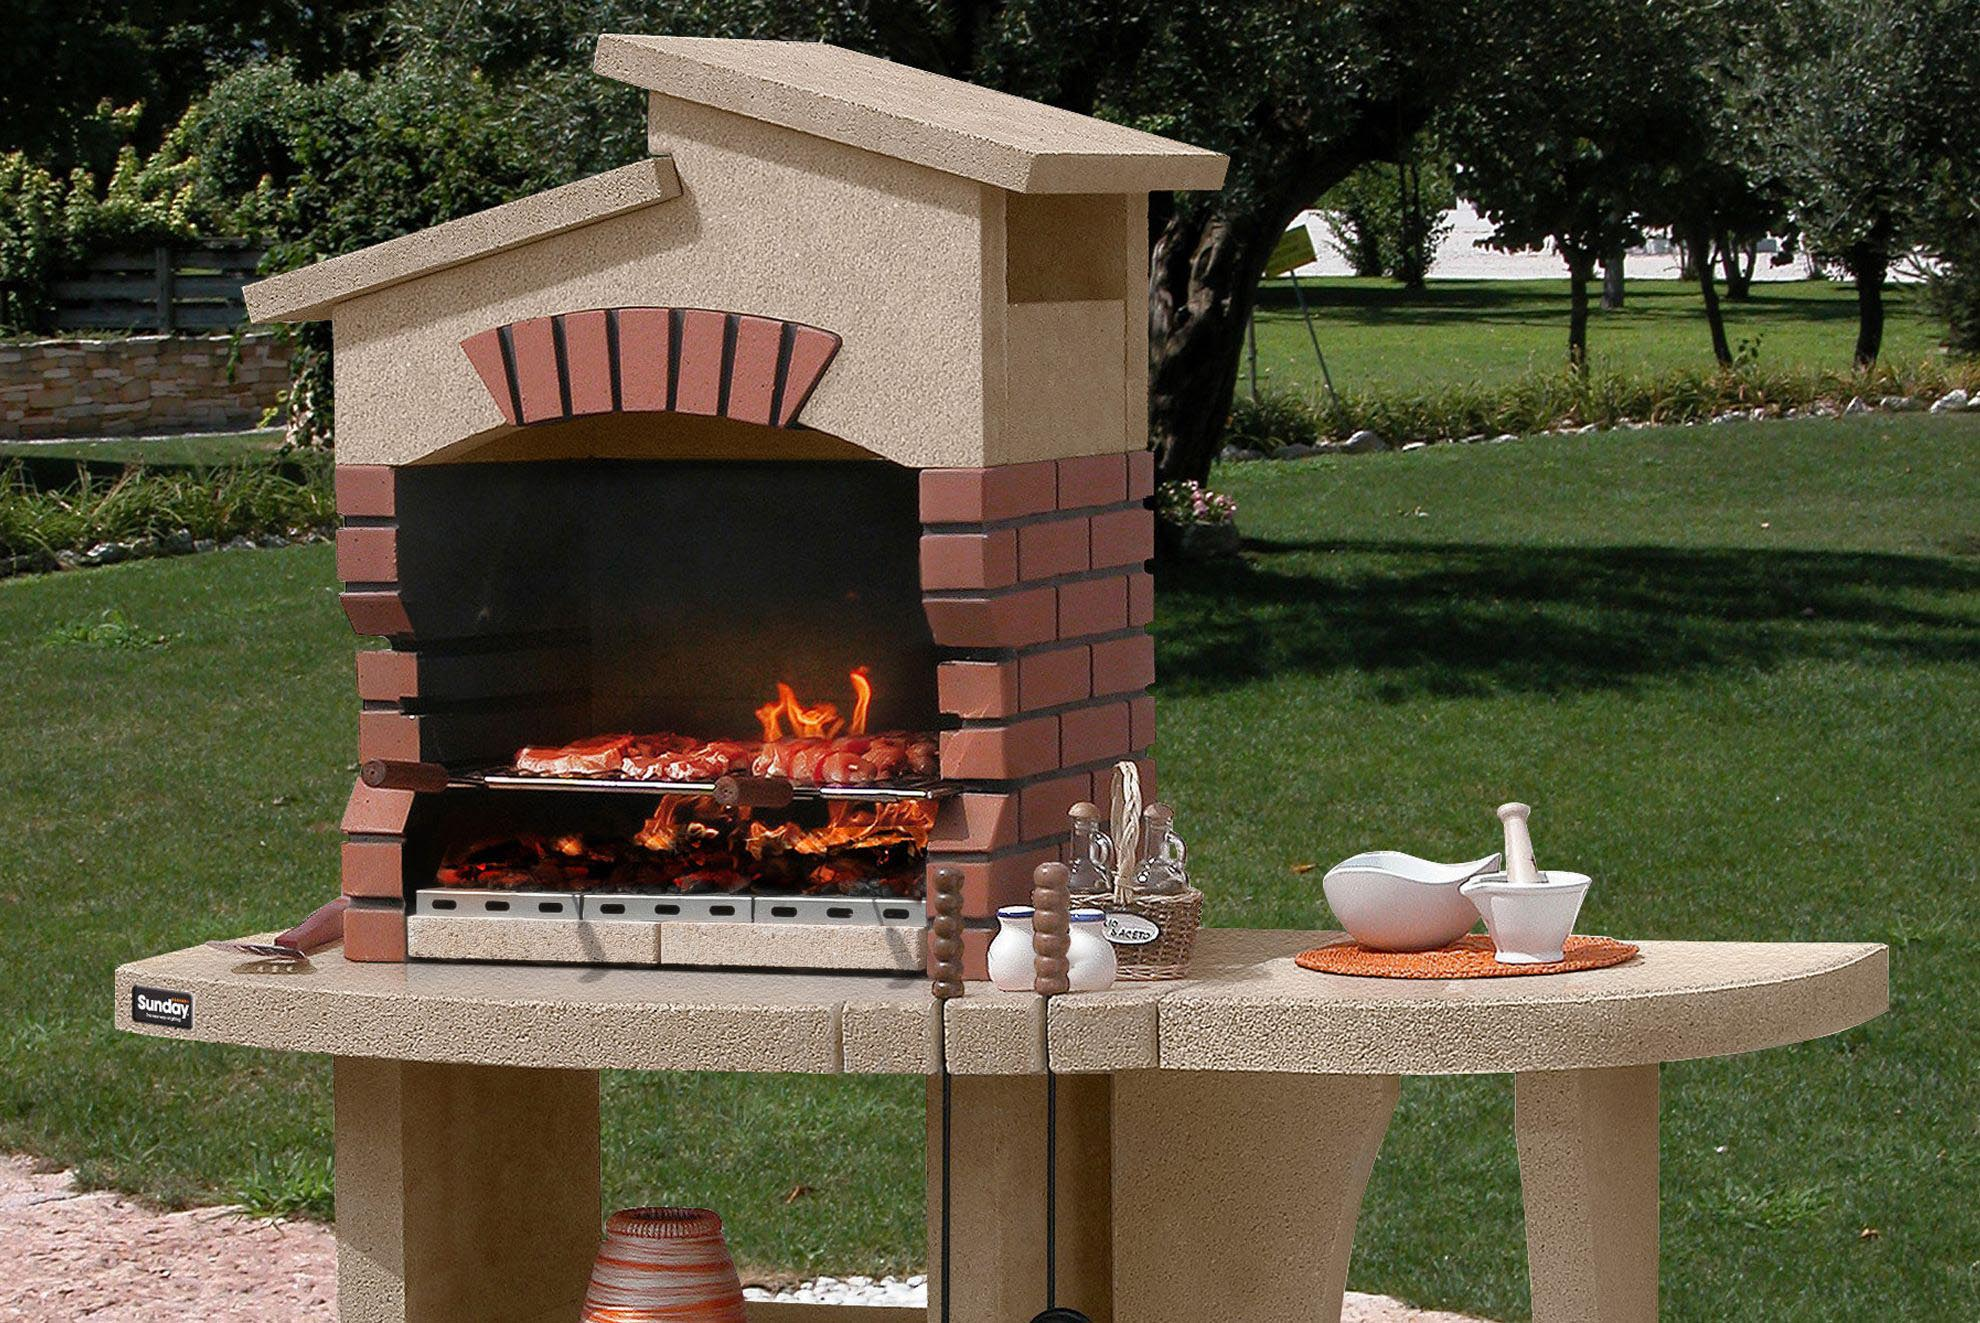 create brick bbq plans before building barbeque or grill fire pit design ideas